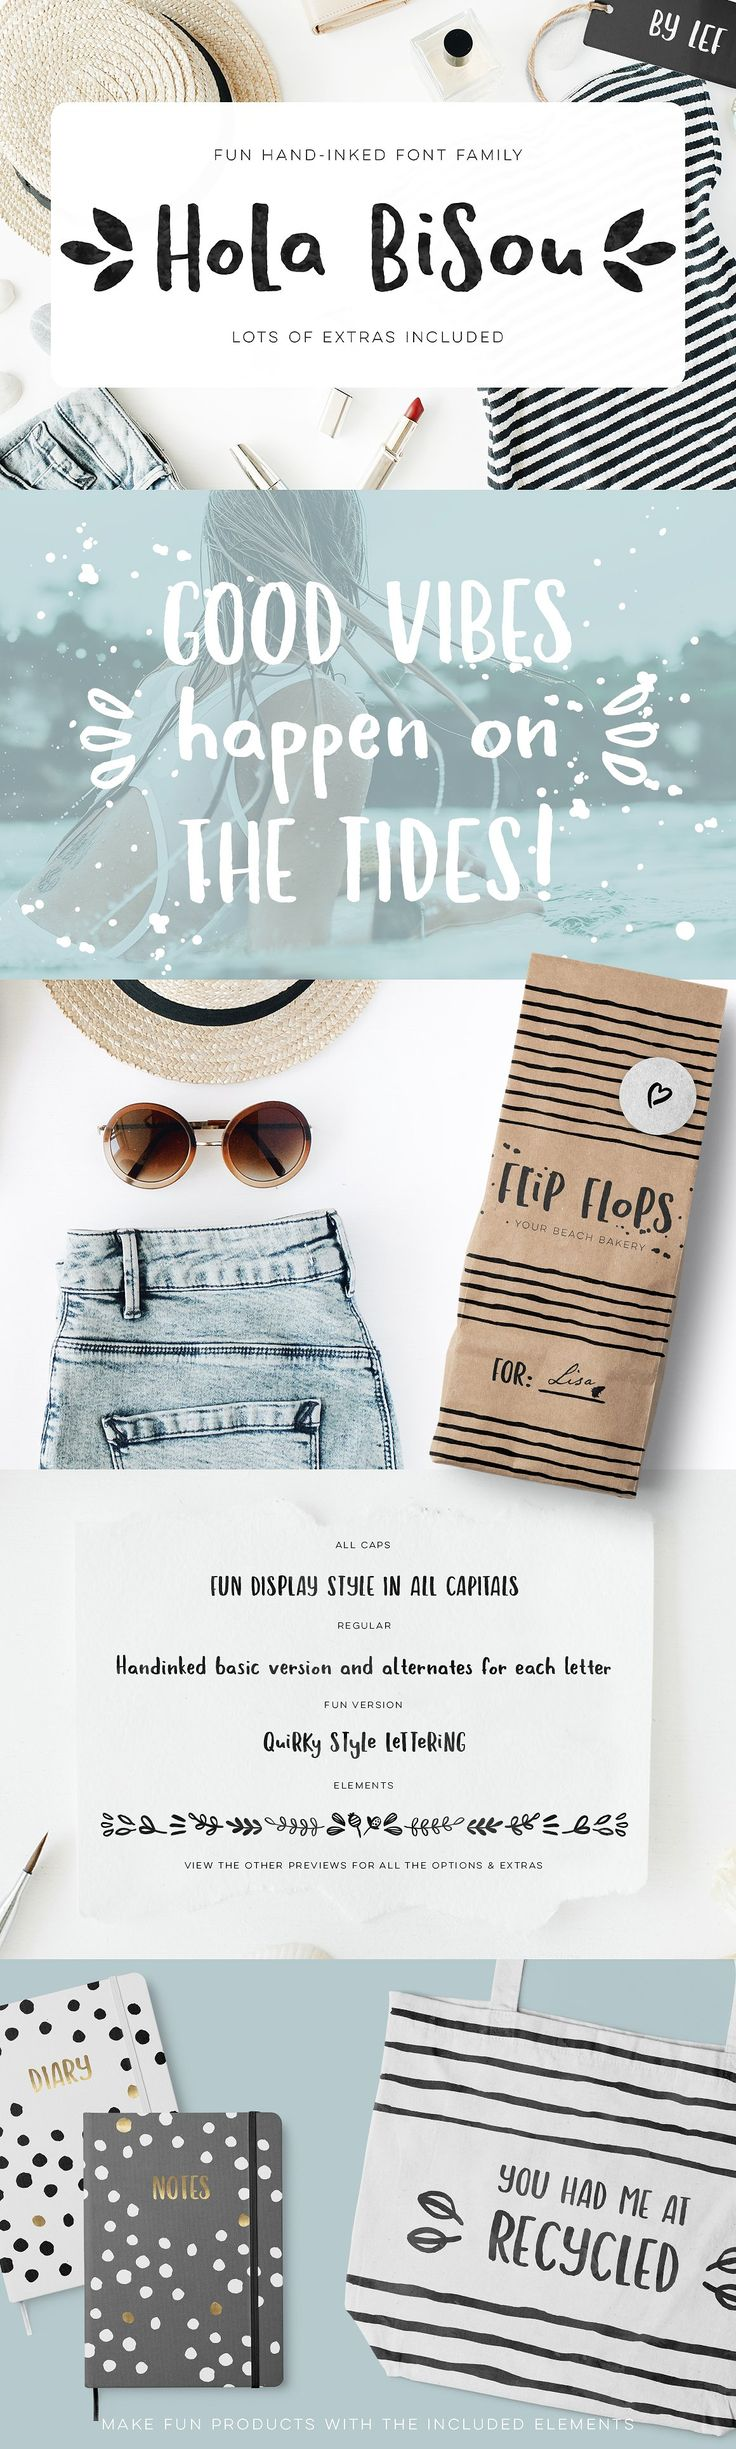 Hola Bisou is a hand written font that's quirky and fun and has a great summer vibes. Bonus elements too. Affiliate Link $16